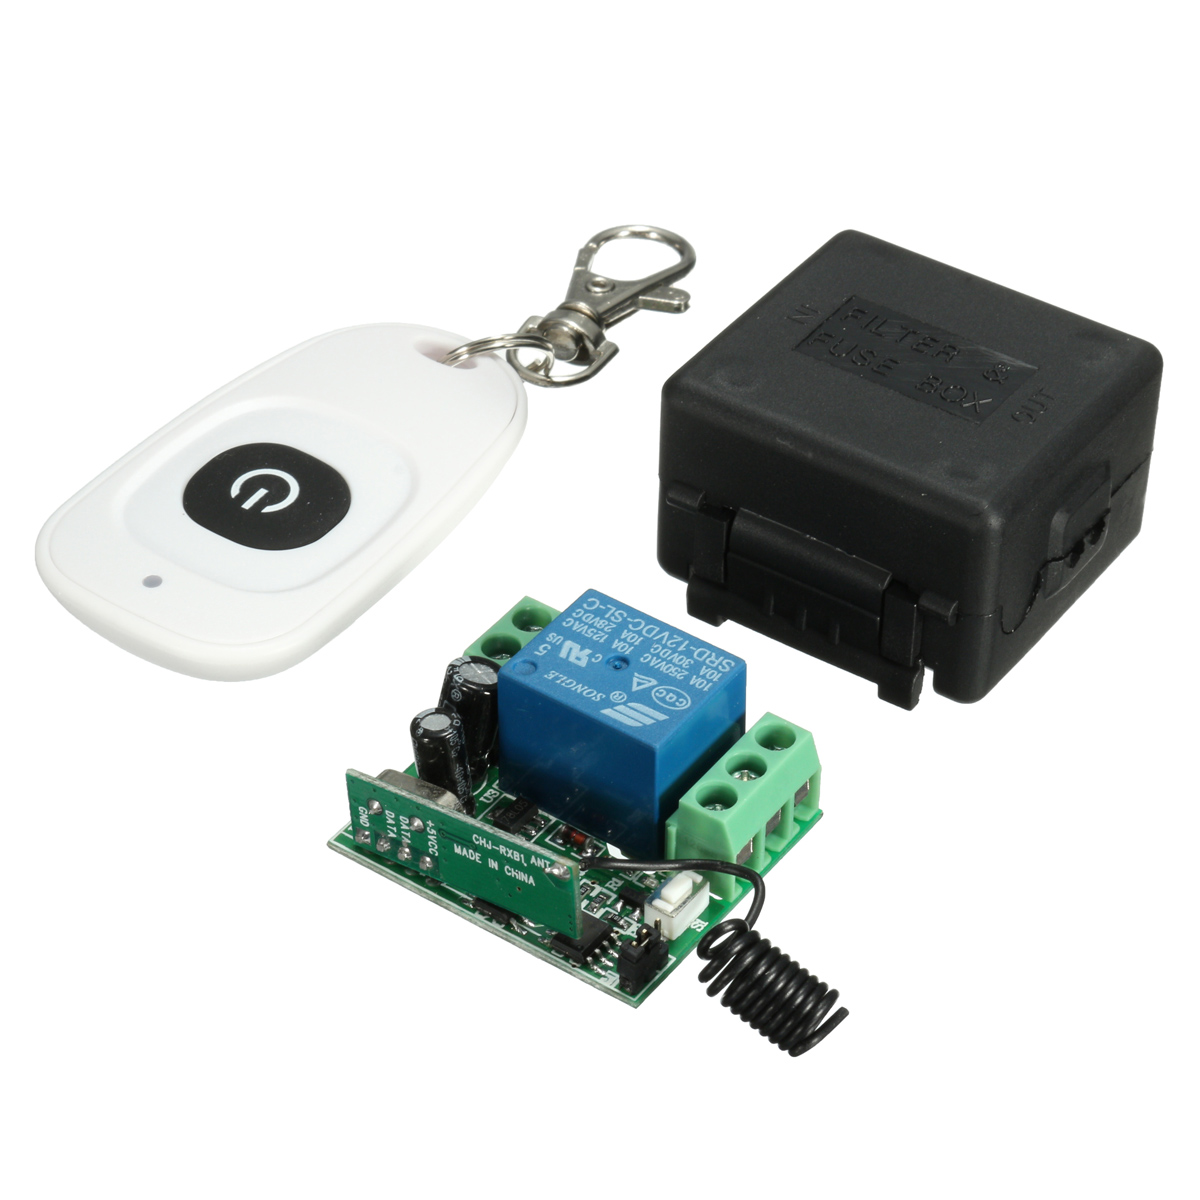 2PCS DC 12v 10A Relay 1CH Wireless RF Remote Control Switch Controller Transmitter + Receiver